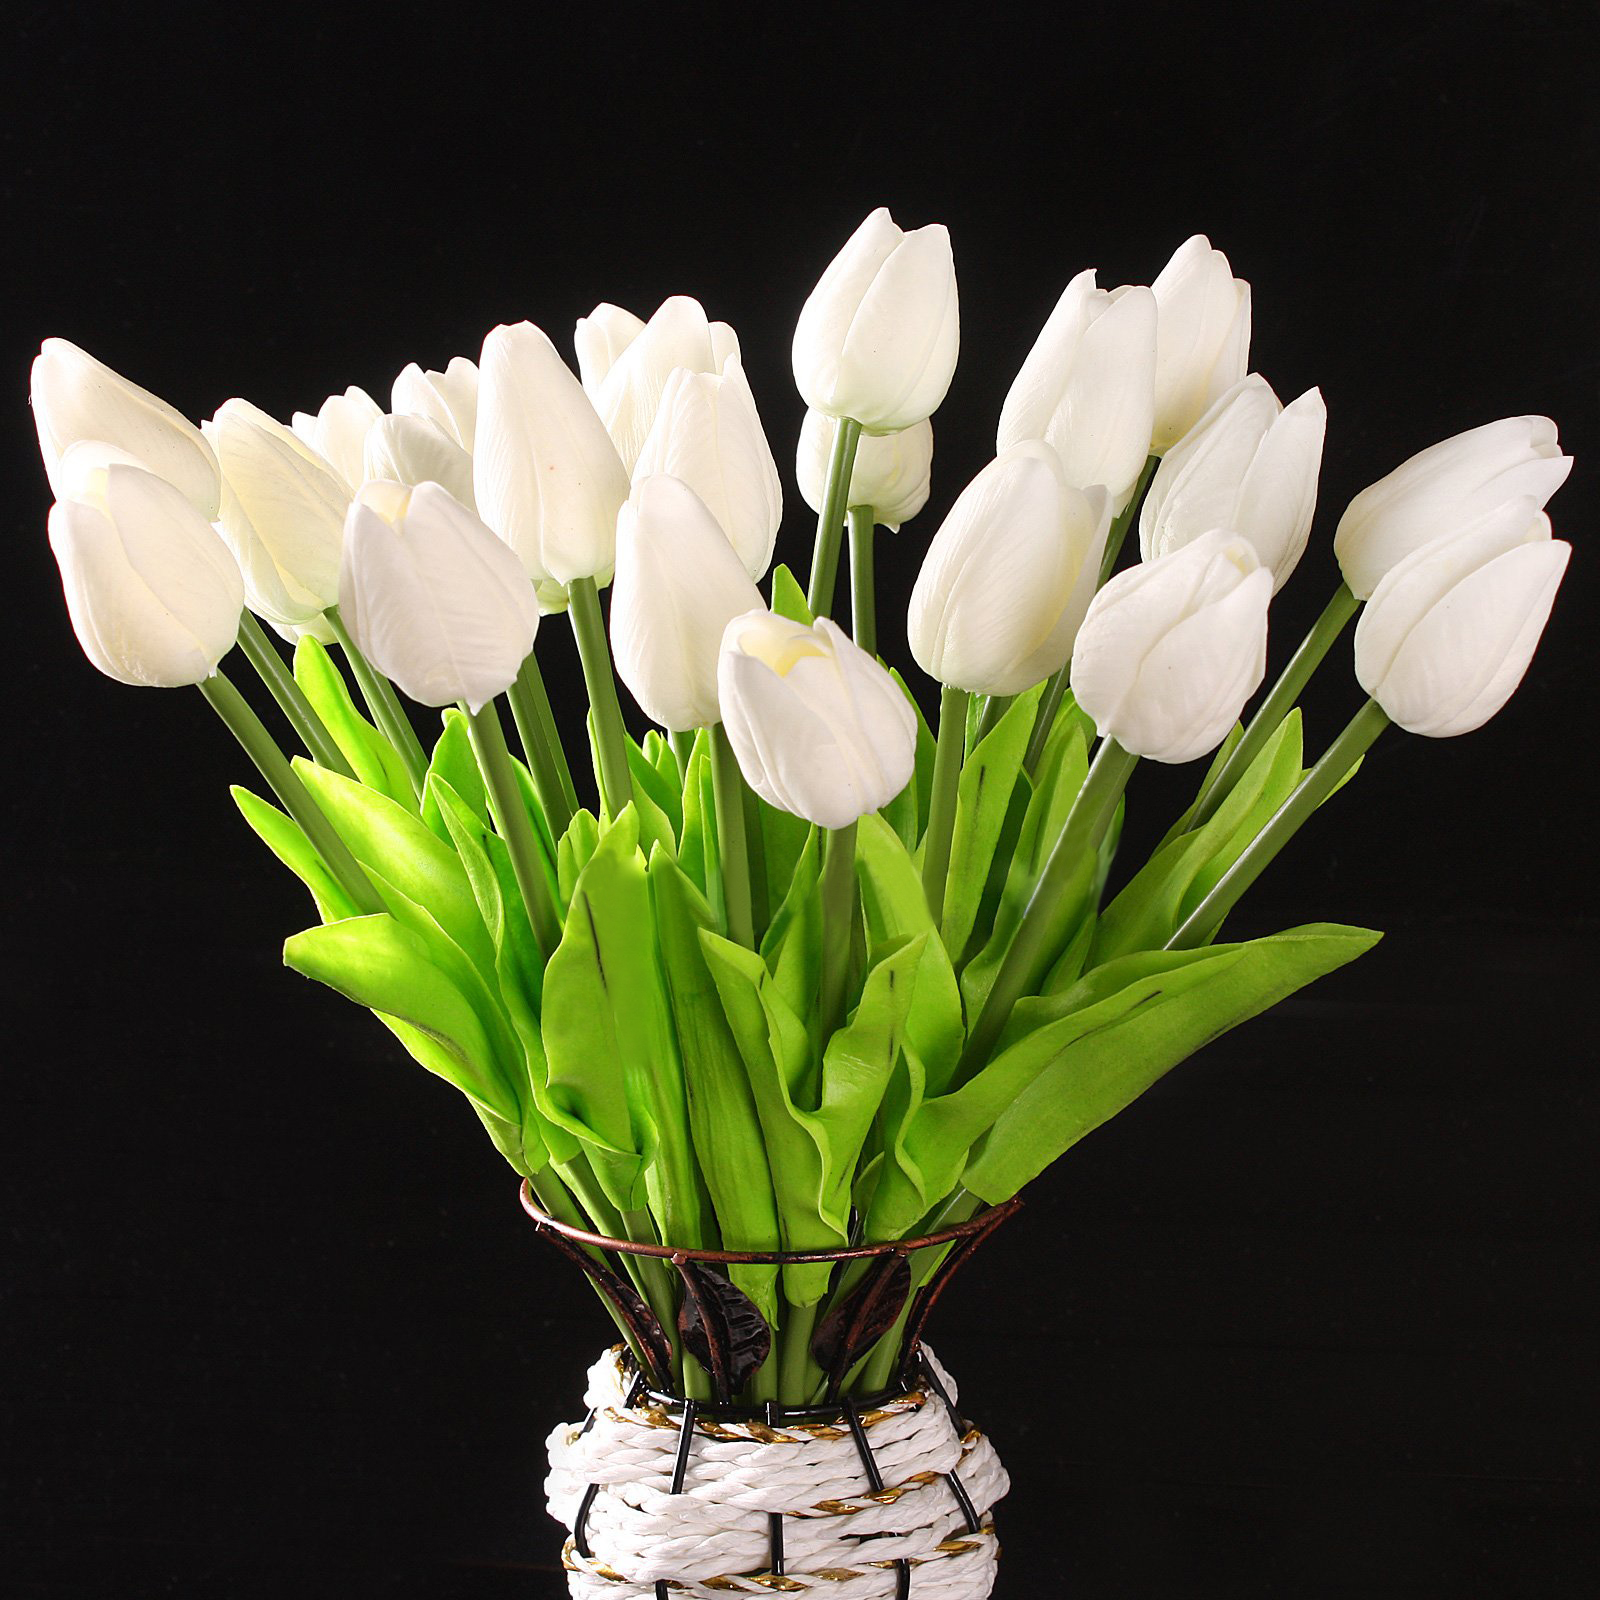 10 Pcs White Tulip Flower Latex For Wedding Bouquet Kc456 White In